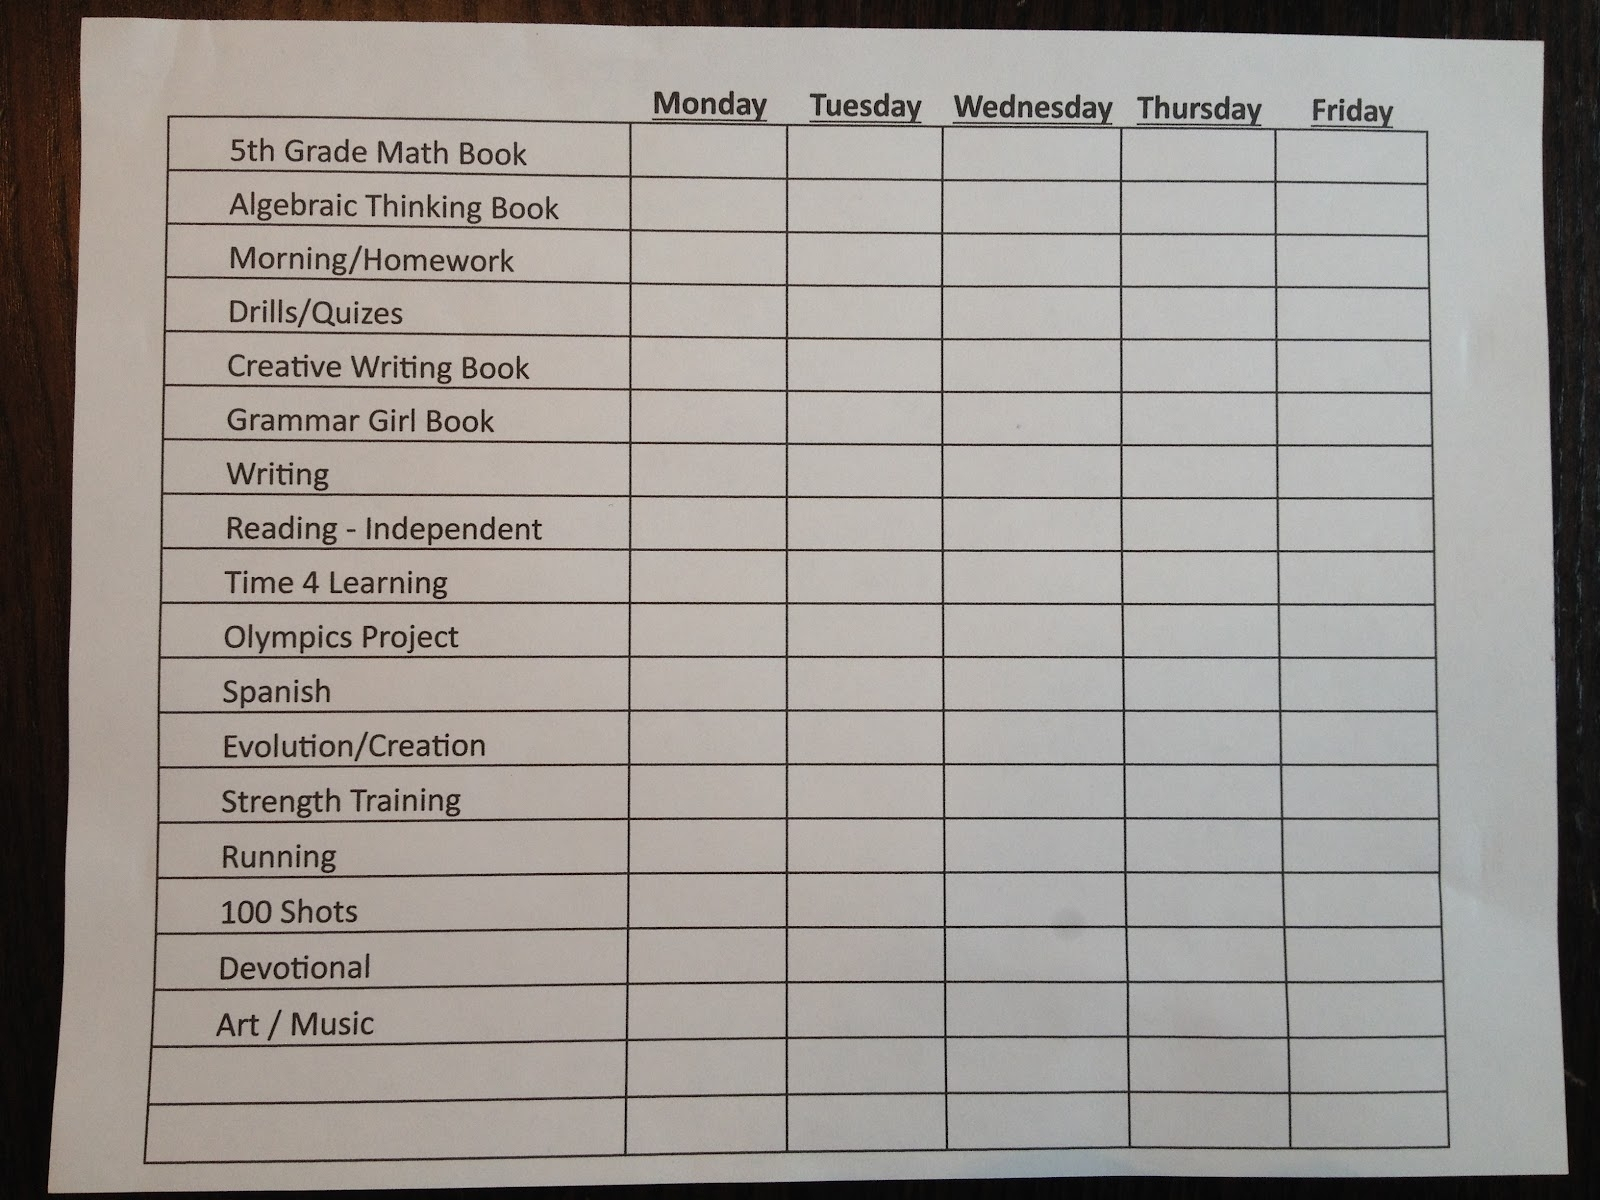 Schedule For The Day In 15 Min Increments | Ten Free